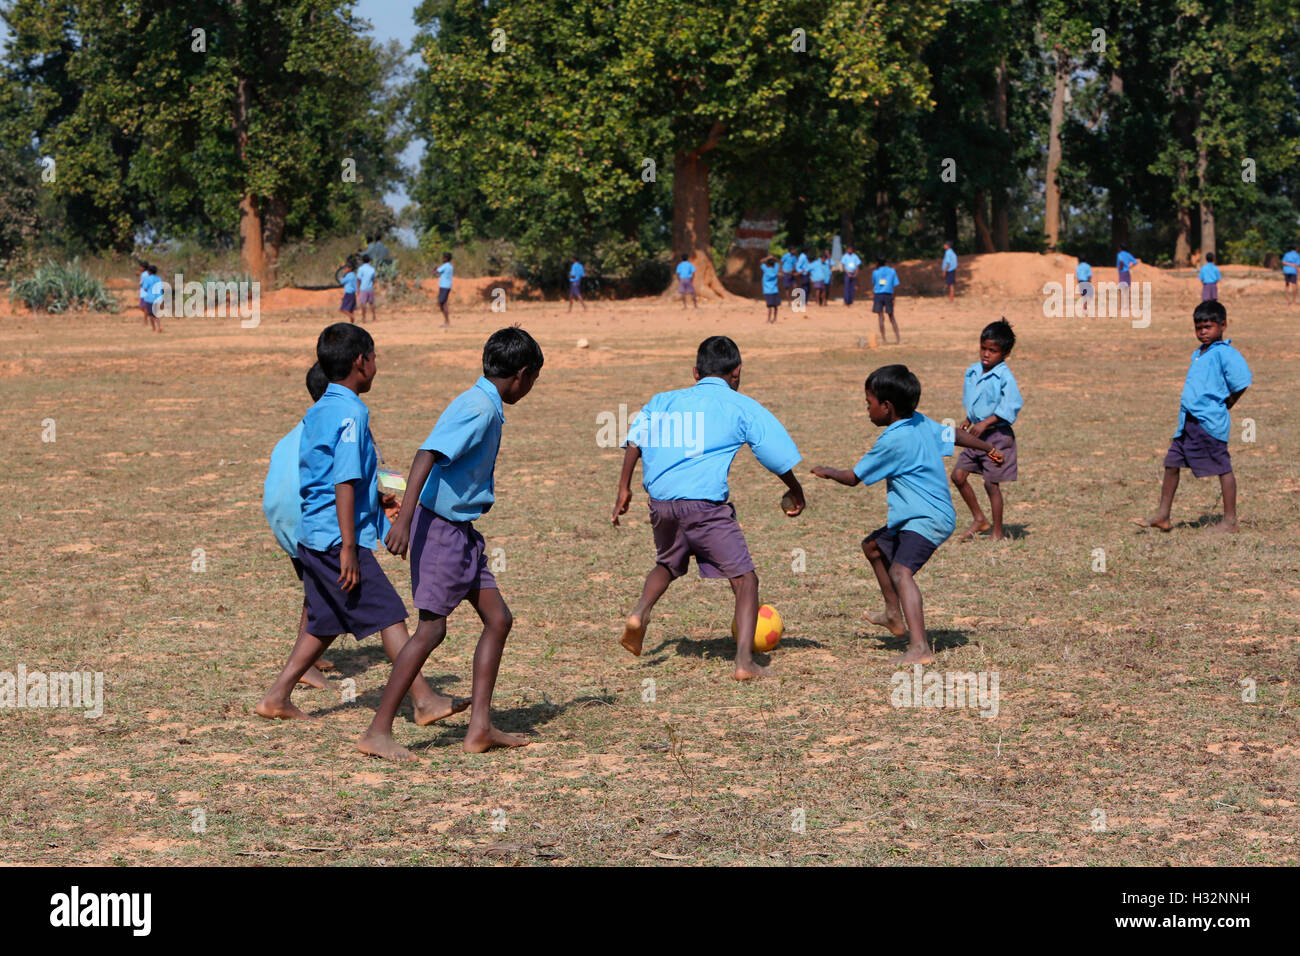 School Children playing Football, KHAIRWAR TRIBE, Anganwadi, Chiniya village, Chattisgarh, India - Stock Image